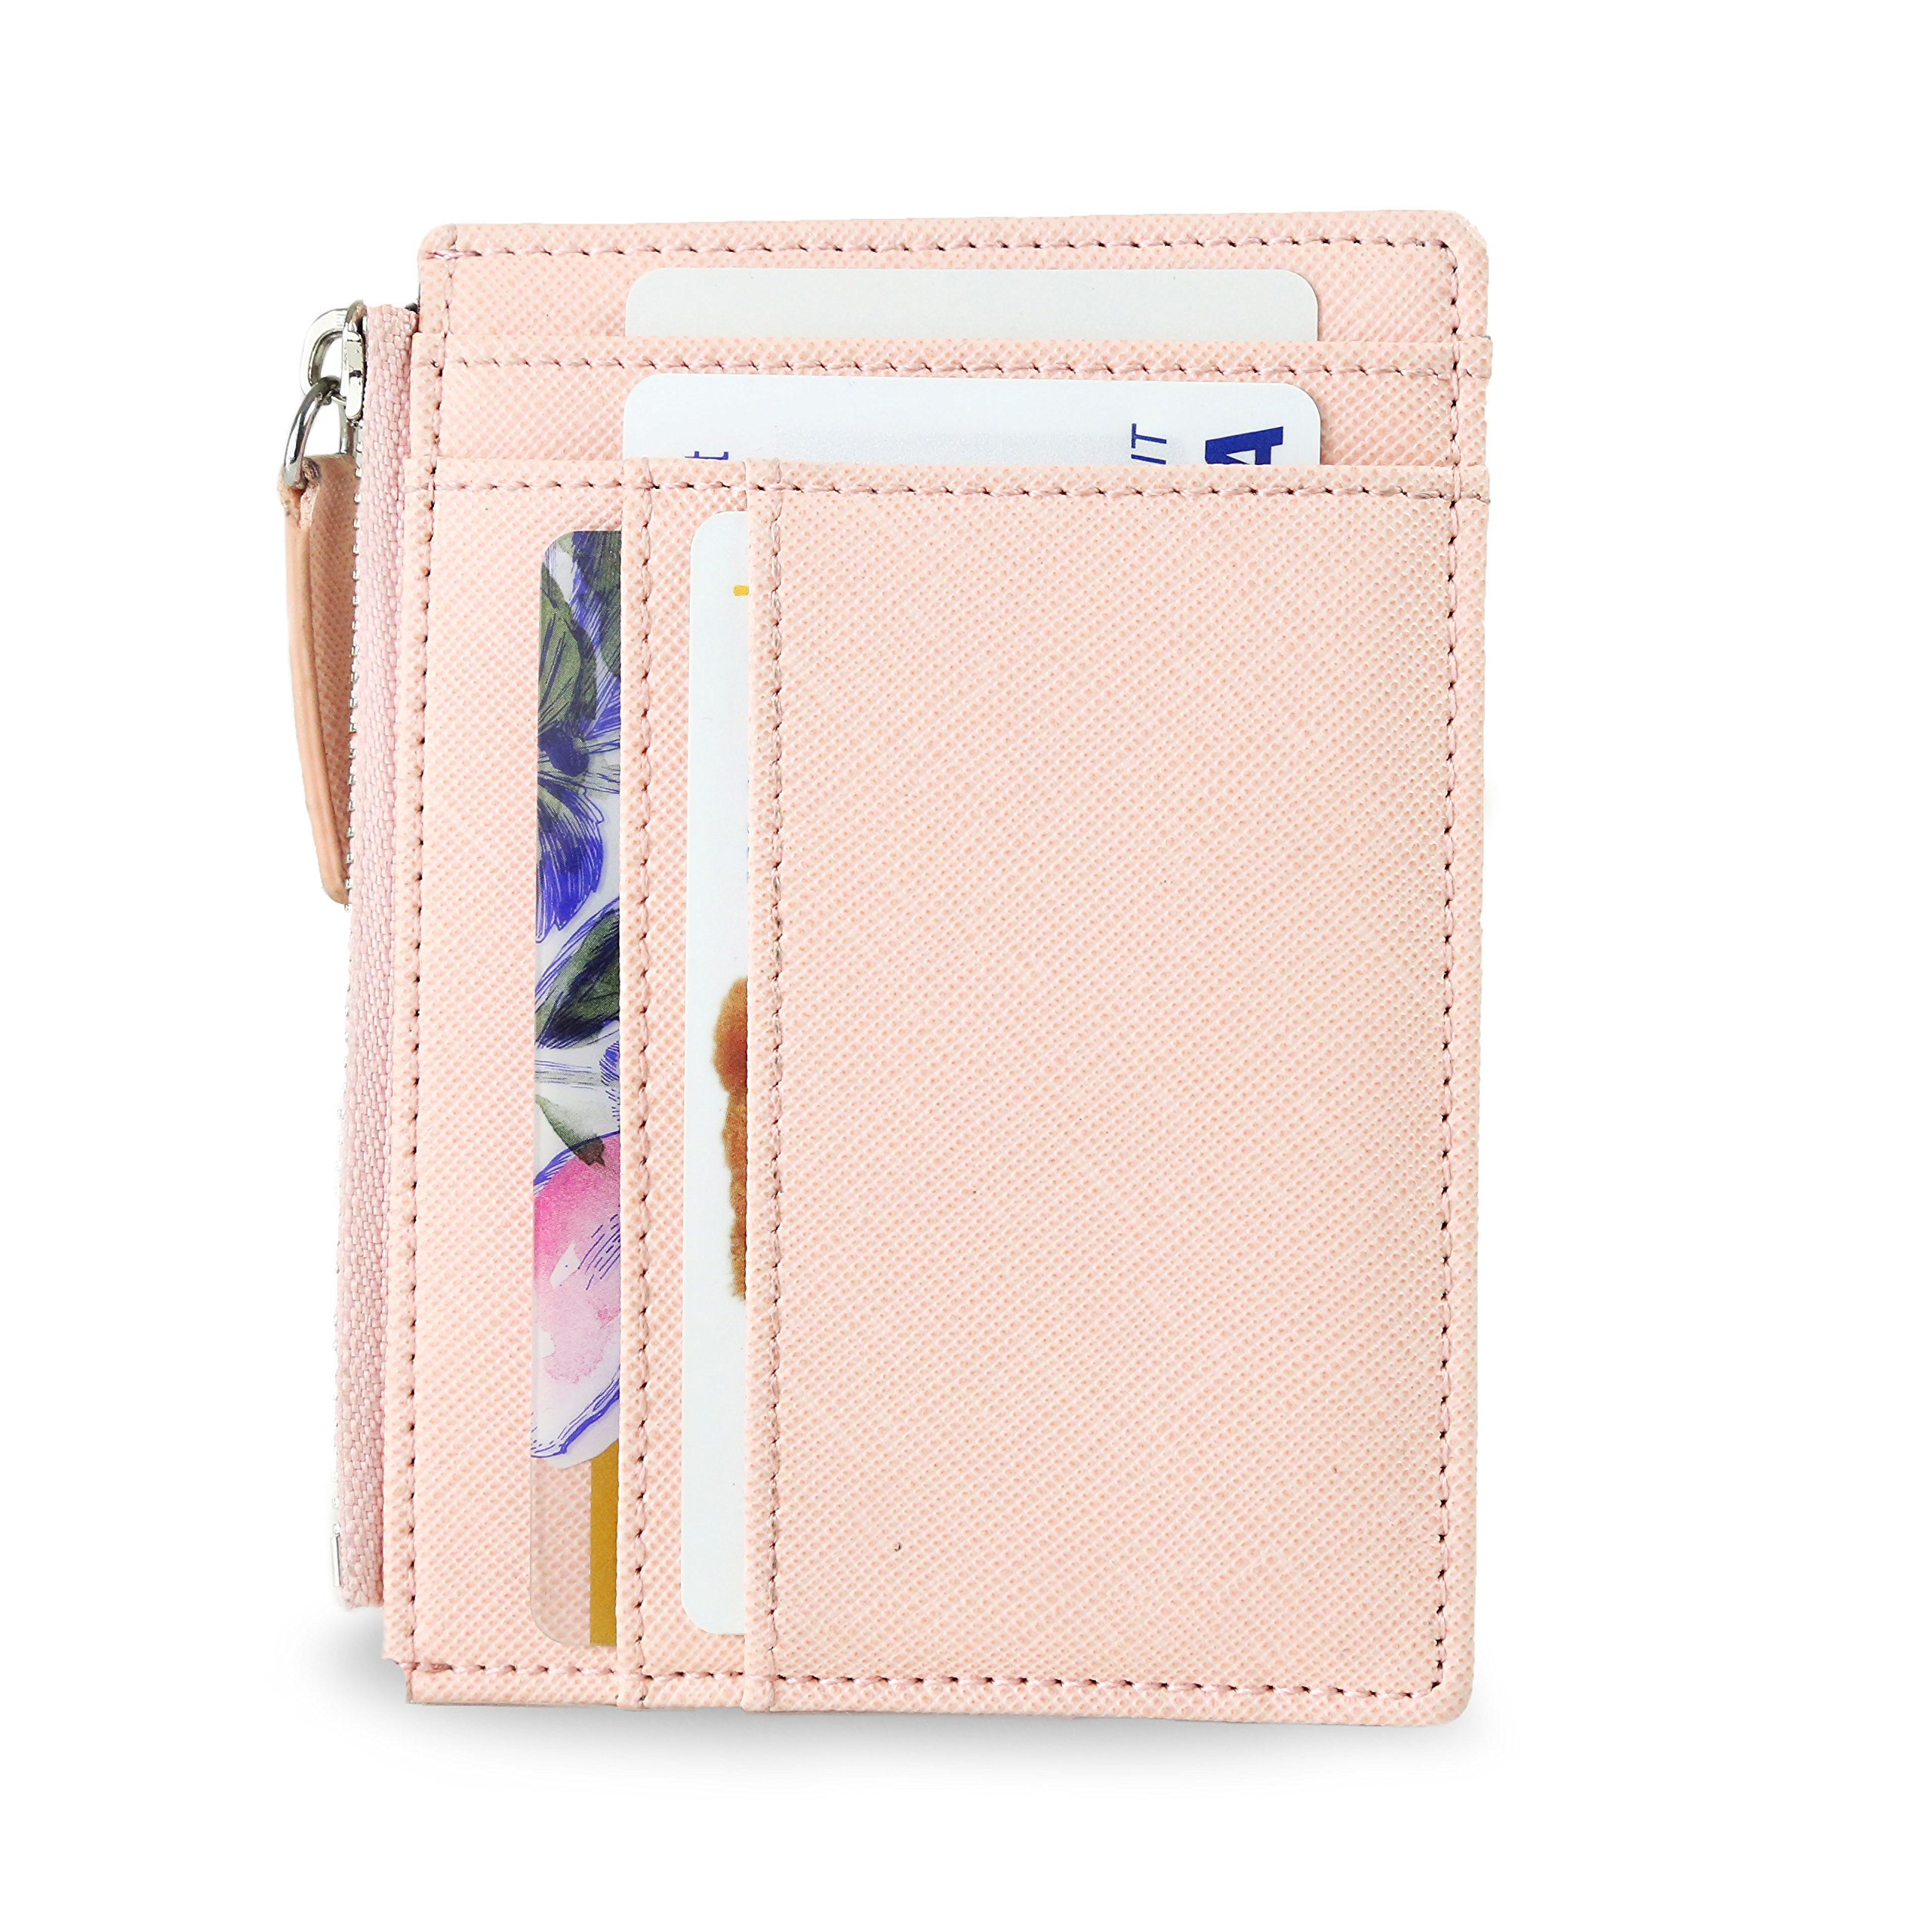 SERMAN BRANDS - Womens Wallet RFID Blocking Credit Card Holder Slim Minimalist Wristlet Card Case Wallet with Zipper Pocket - Removable Wristlet Strap (Lush CH)